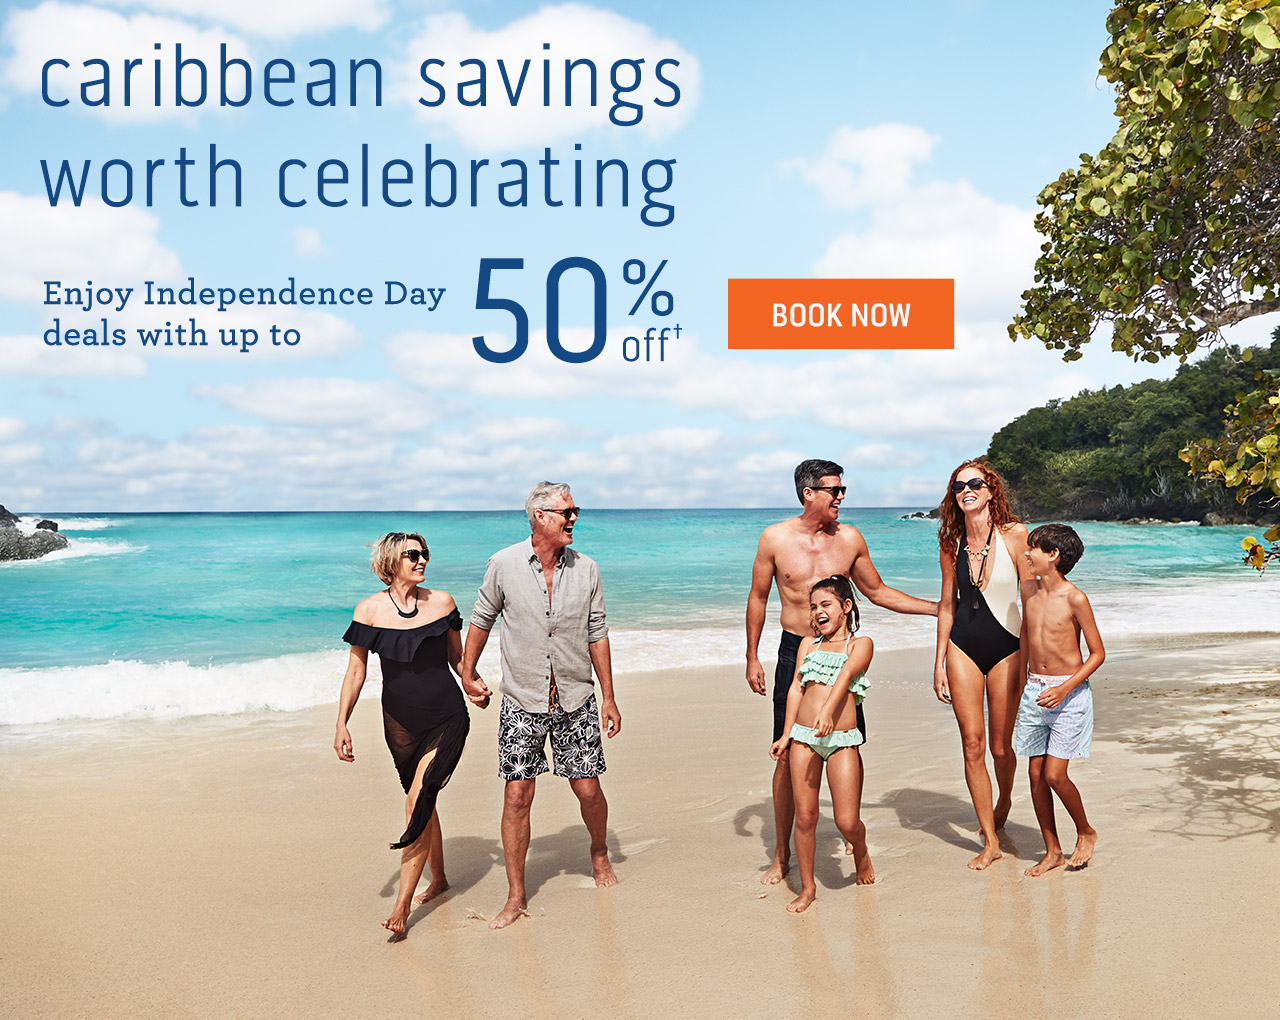 Image of two sets of couples and two kids walking on the beach | caribbean savings worth celebrating - Enjoy Independence Day deals with up to 50% off - Click here to book now